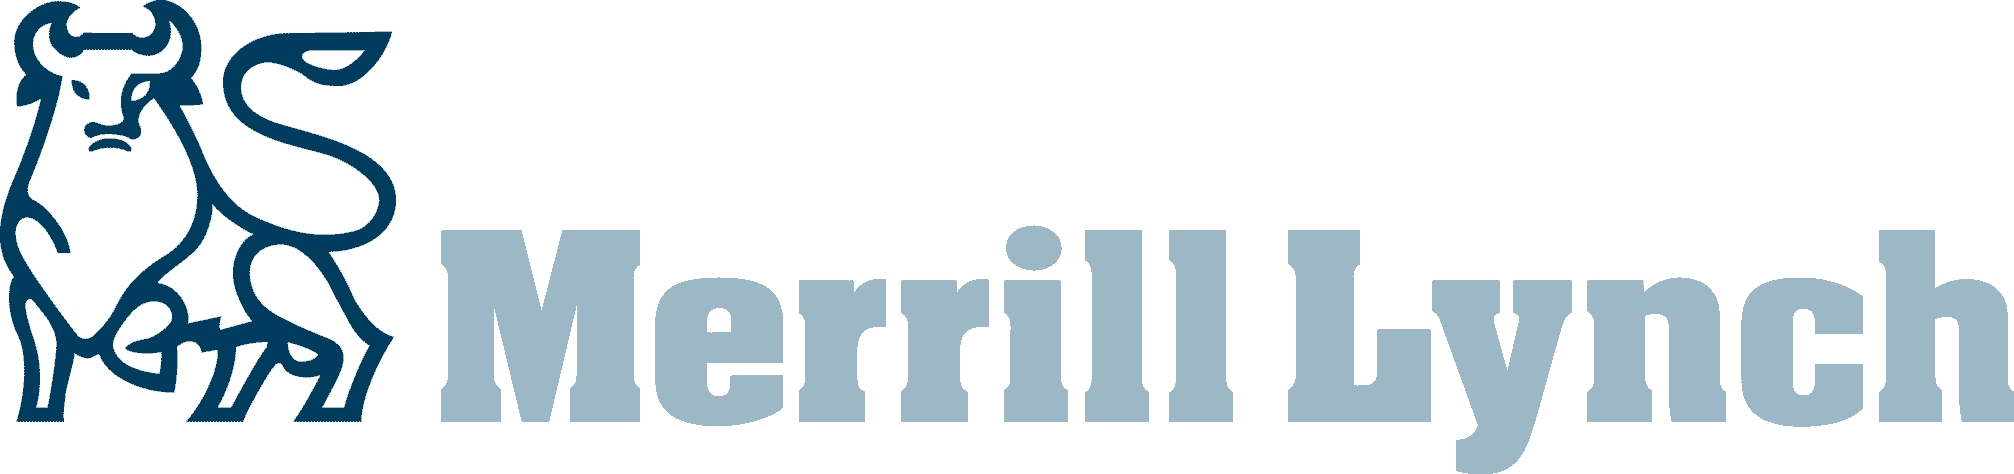 Merrill_Lynch_logo.jpg